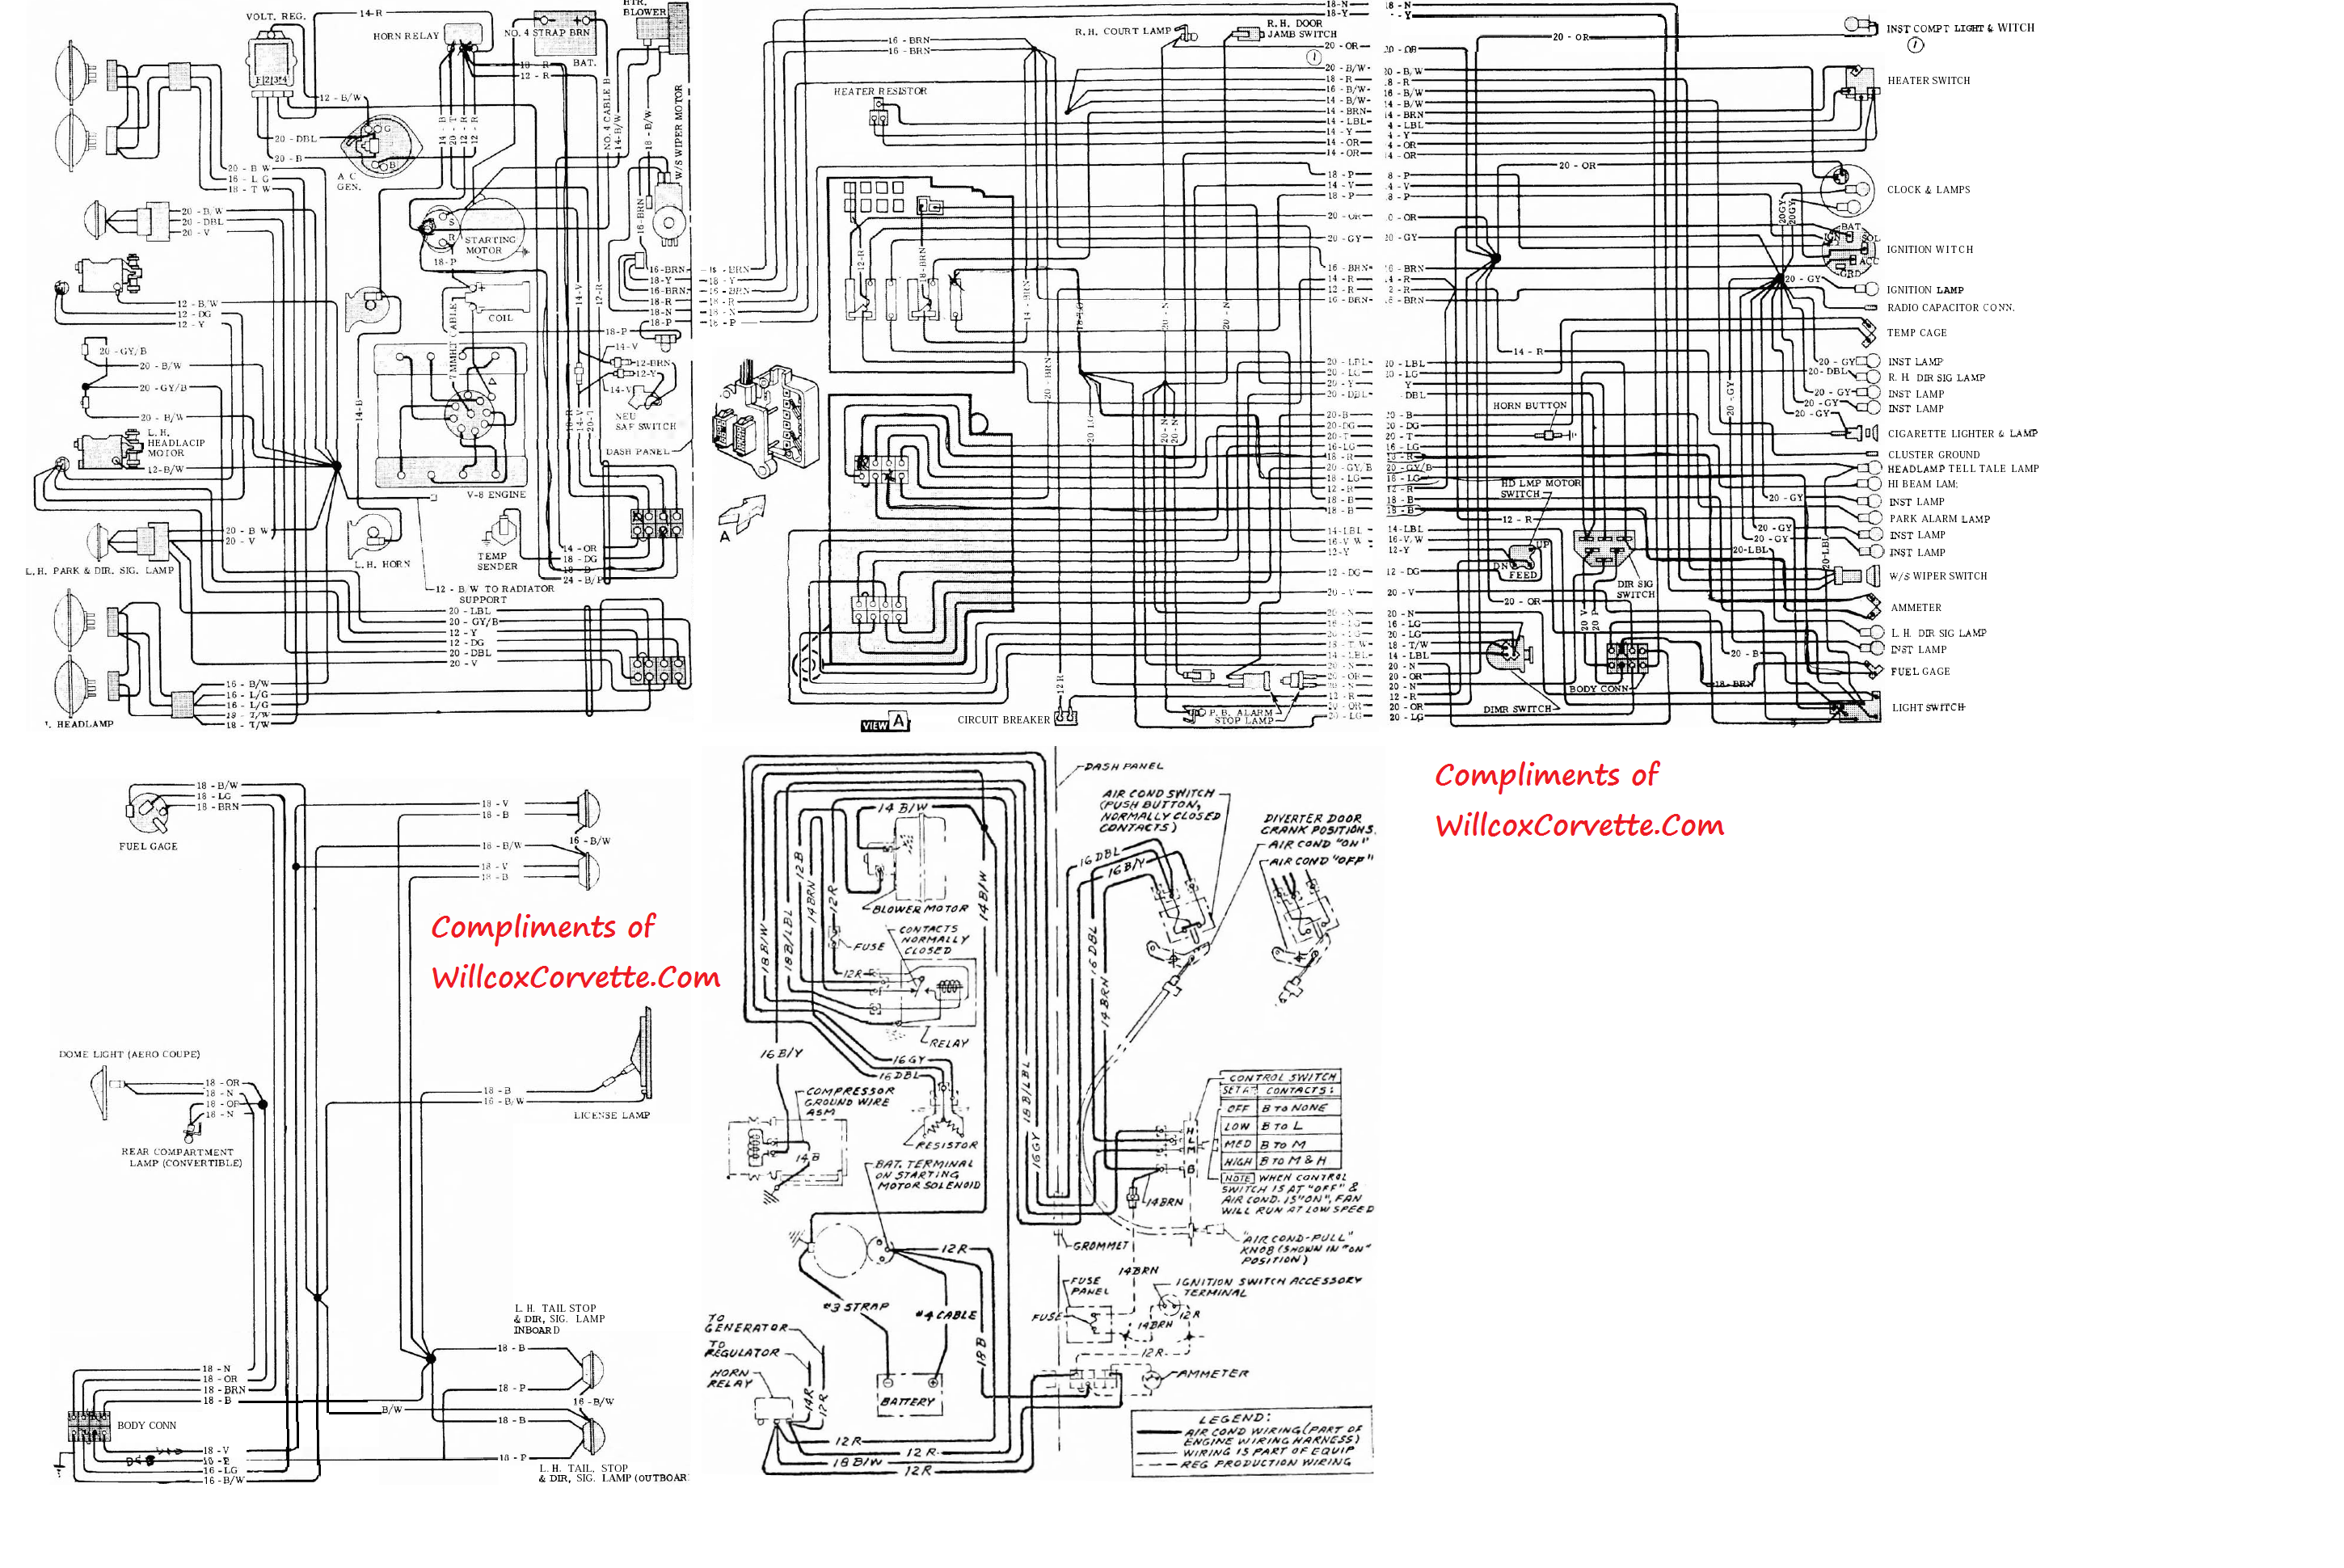 1963 Corvette Tracer Wiring Diagram Tracer Schematic 2001 corvette wiring diagram 2001 buick wiring diagram \u2022 wiring 2000 C5 Corvette Wiring Diagram at gsmx.co